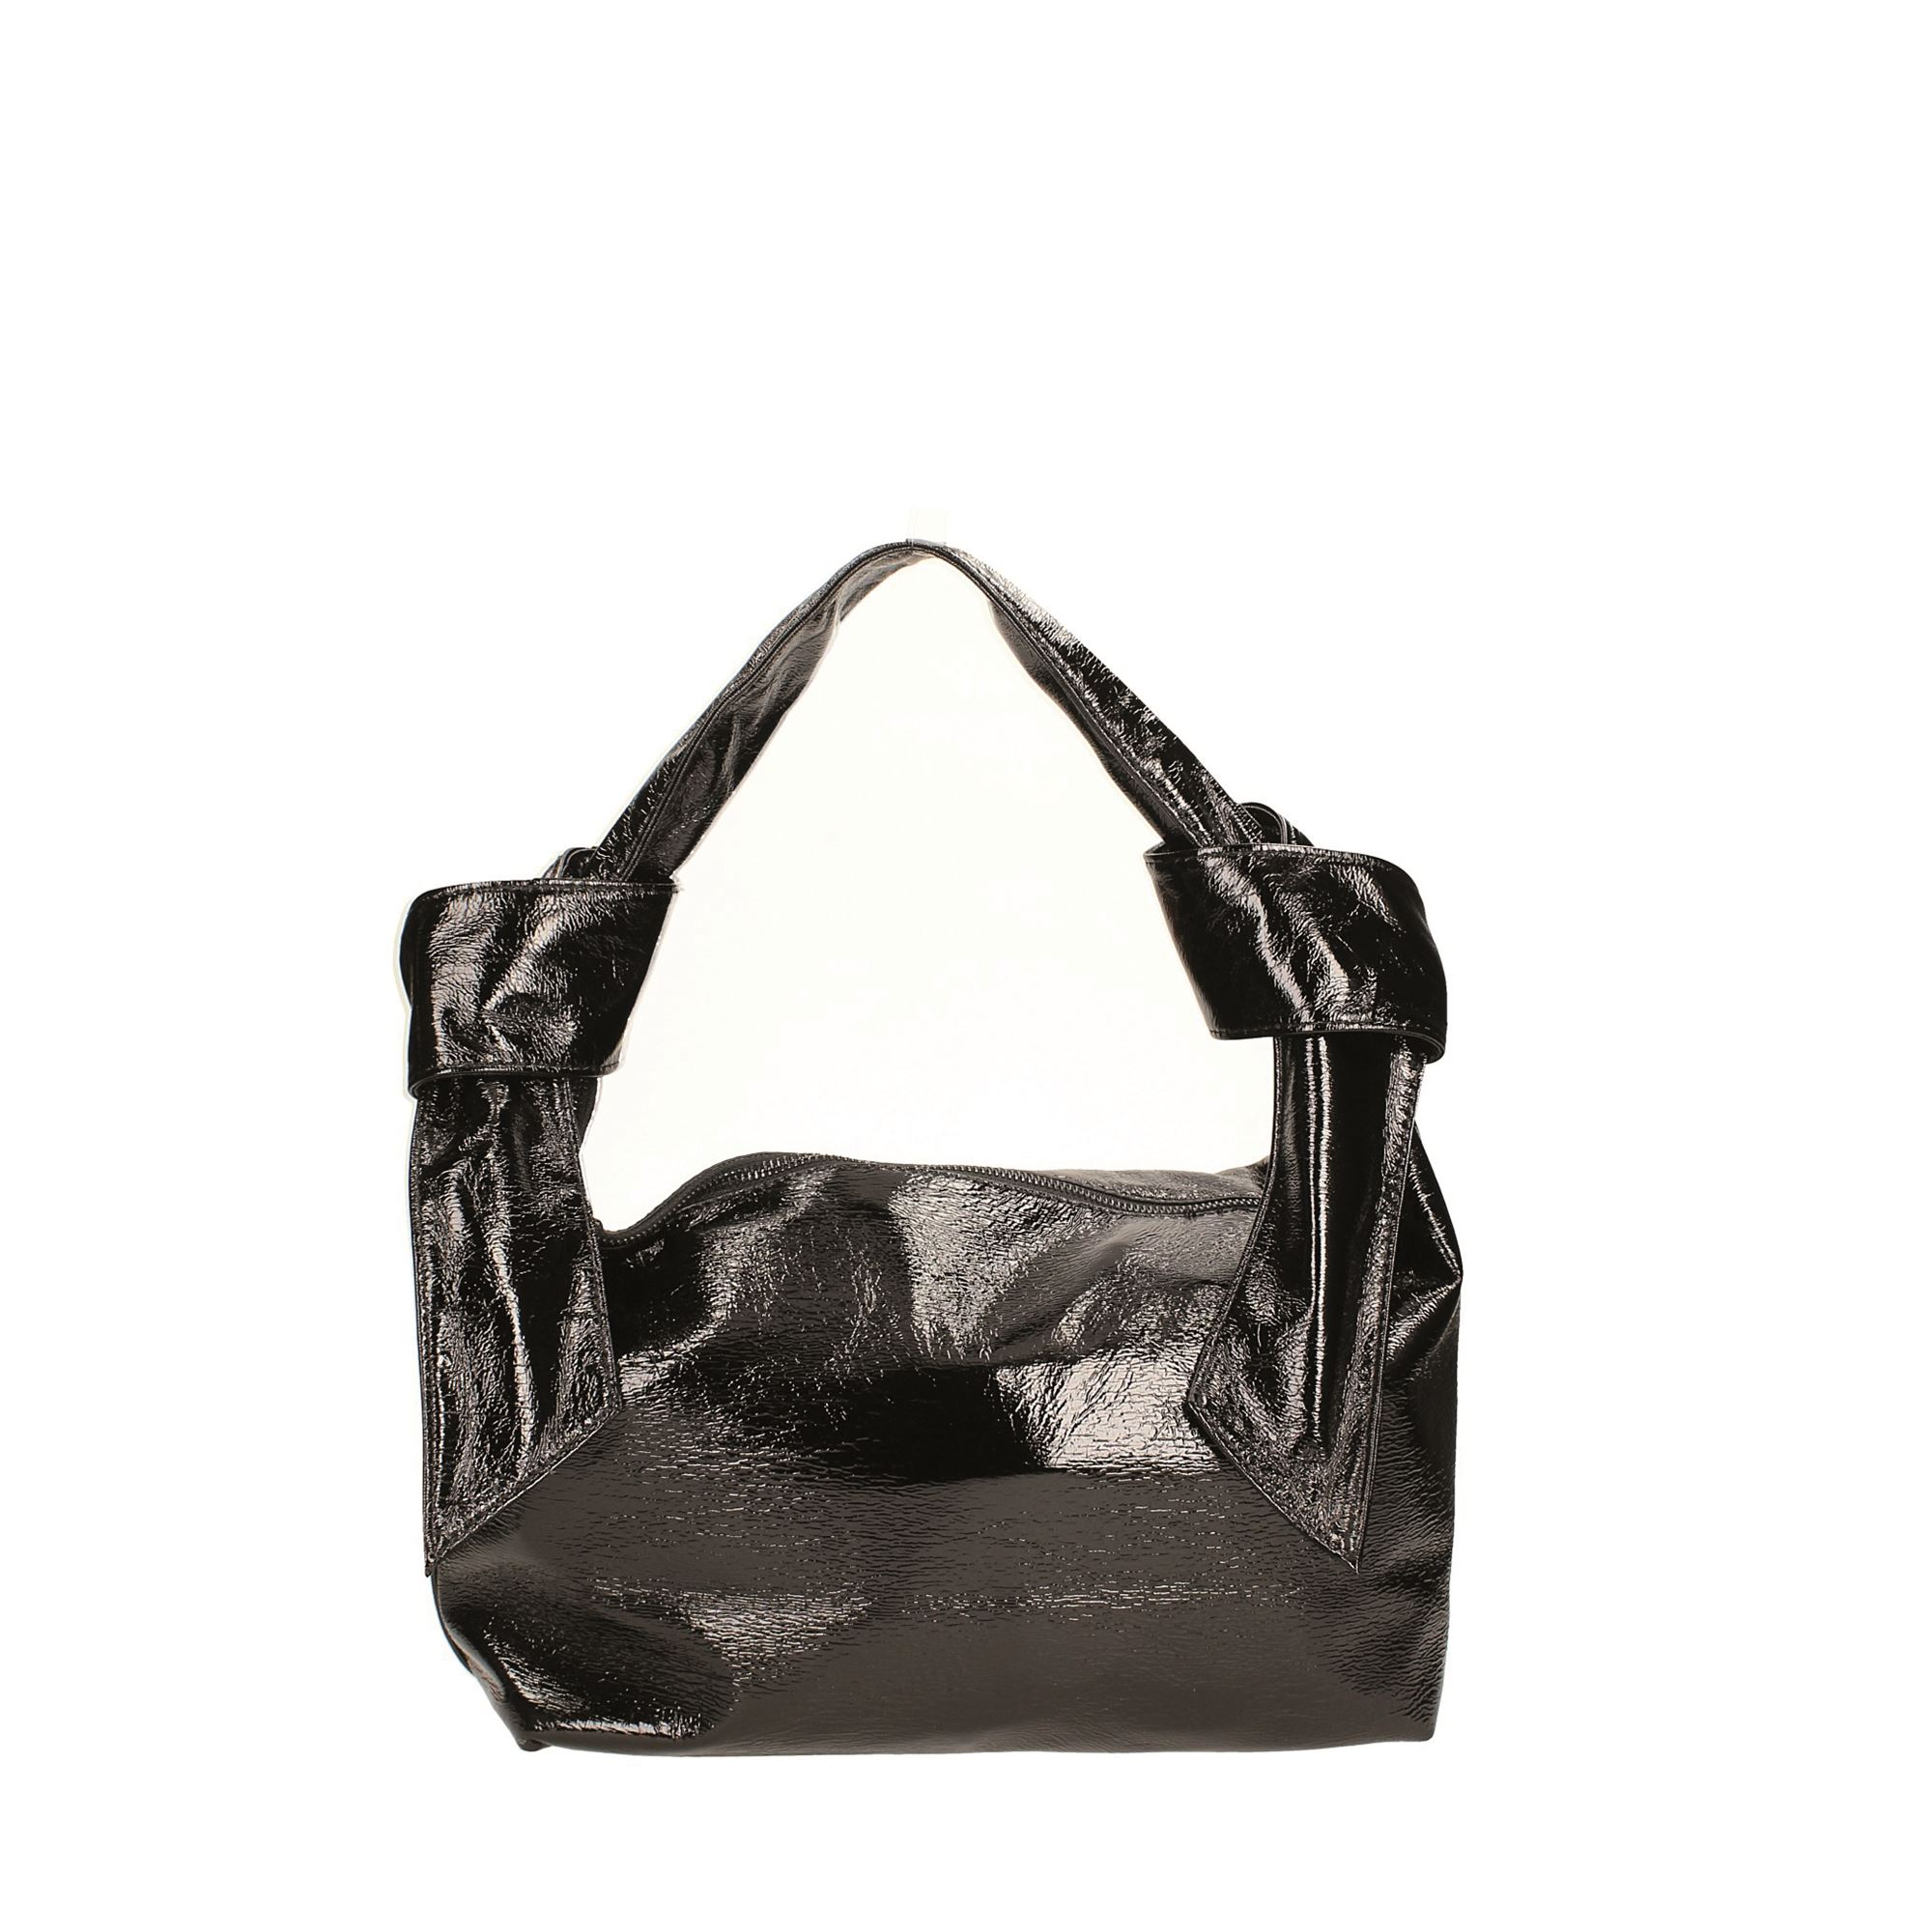 Tata Italia Accessories Woman Bags Black 17A859-BS